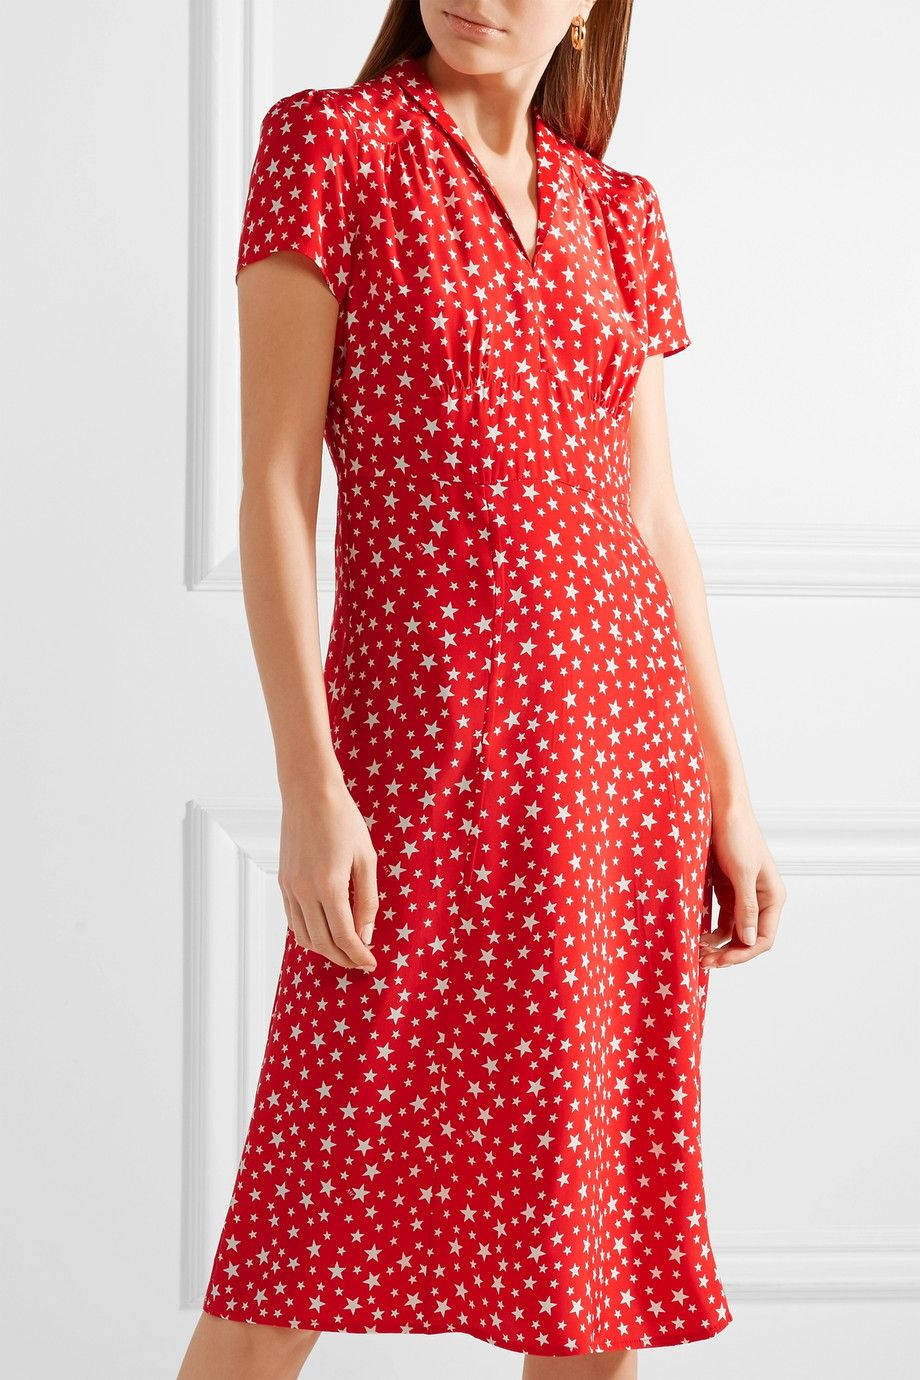 Morgan Printed Silk Crepe De Chine Dress - Red HVN 8g4bxT